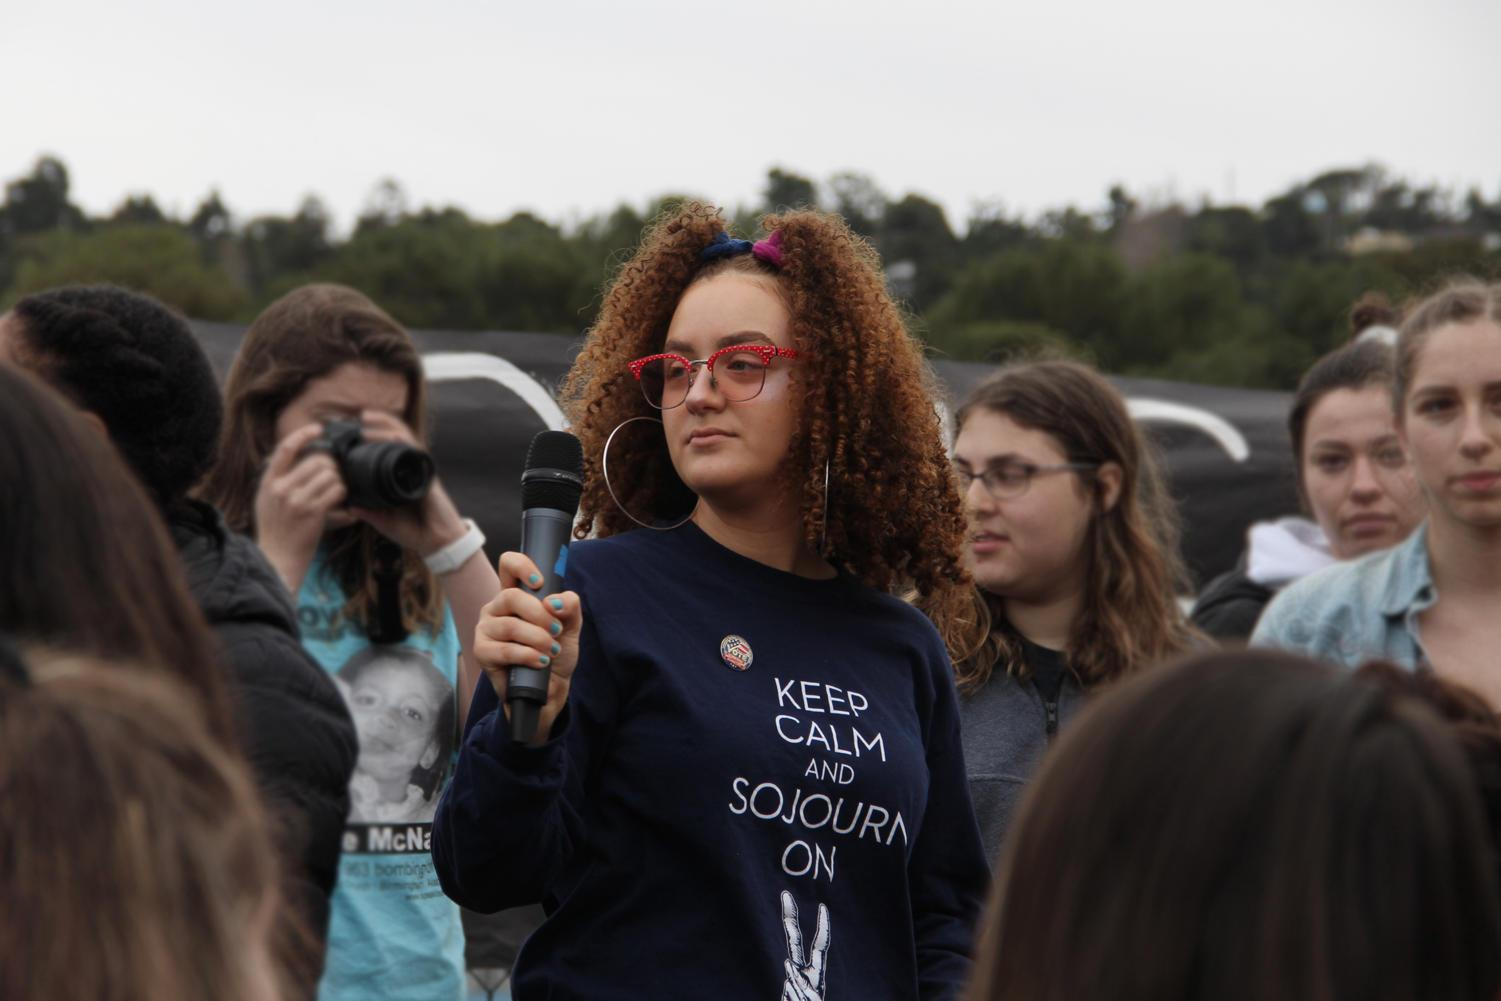 Hundreds of students made their way down to the quad for 17 minutes on March 14 at 10 a.m. to stand in solidarity with Parkland, Fla. Rosie Asmar, a senior, helps to lead the rally by singing songs and holding a moment of silence to honor the 17 students who were killed.